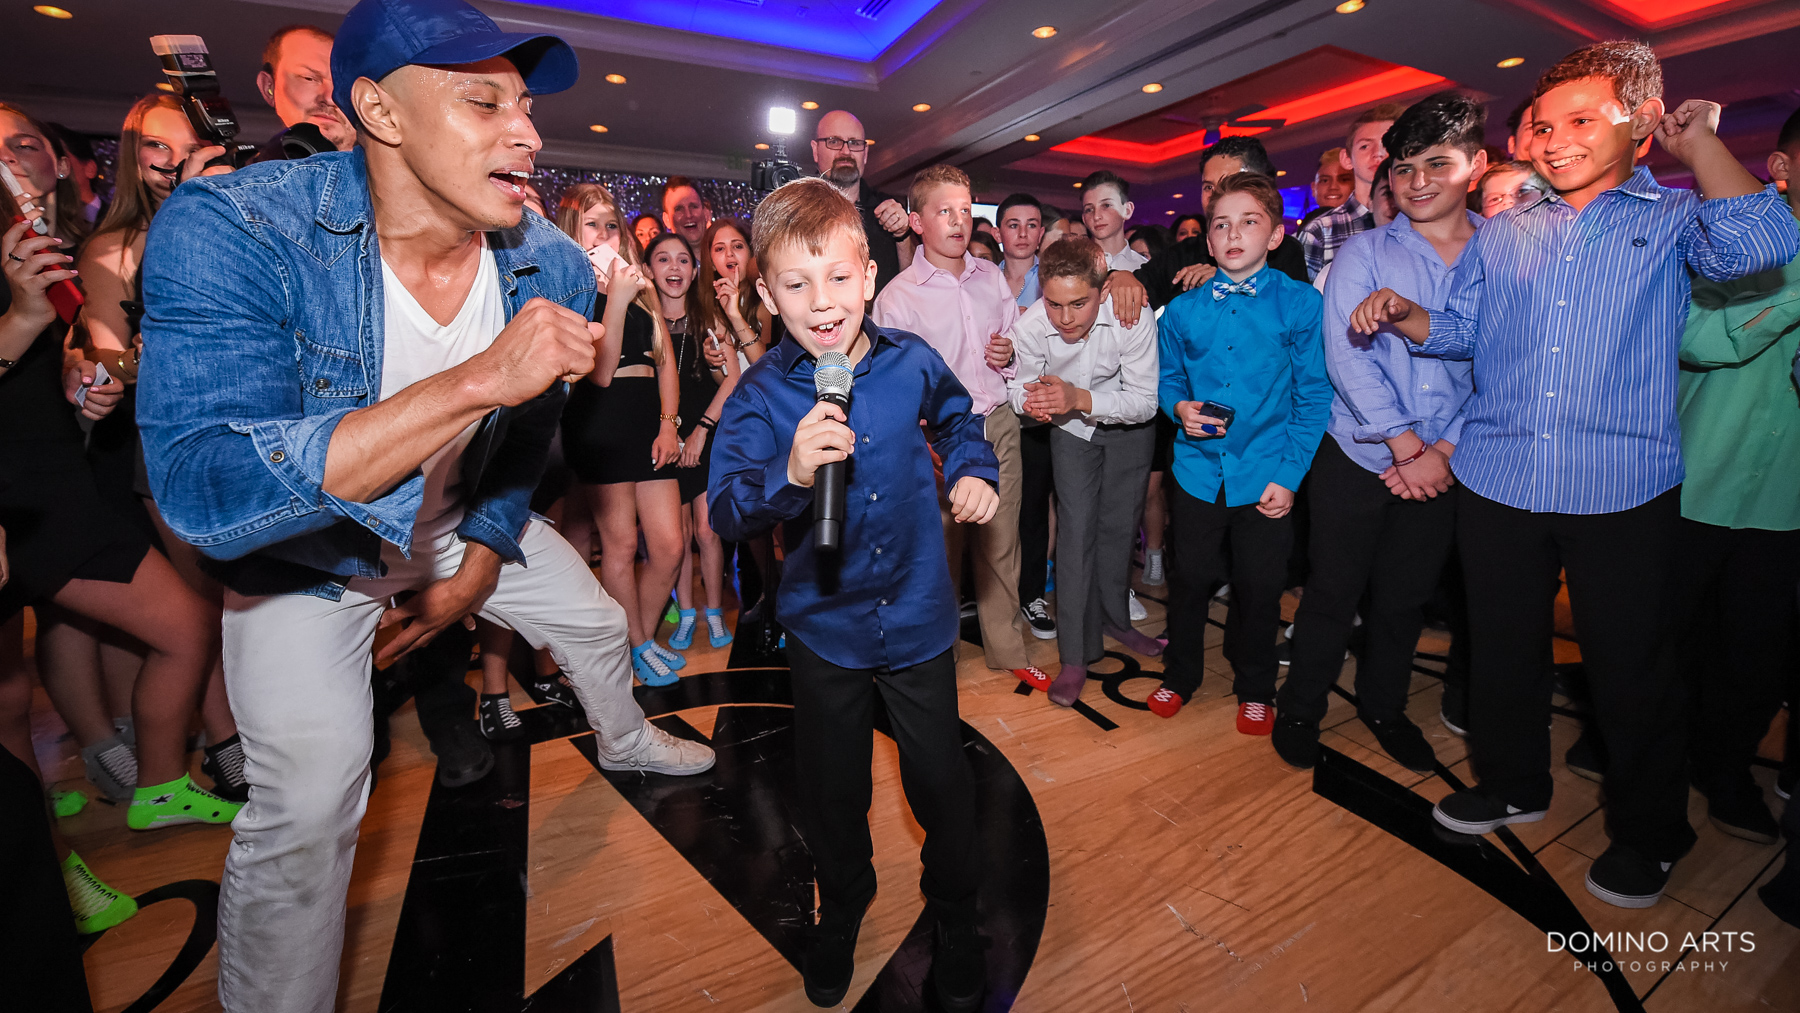 fun party dancing pictures at sports theme mitzvah at Boca Raton Florida